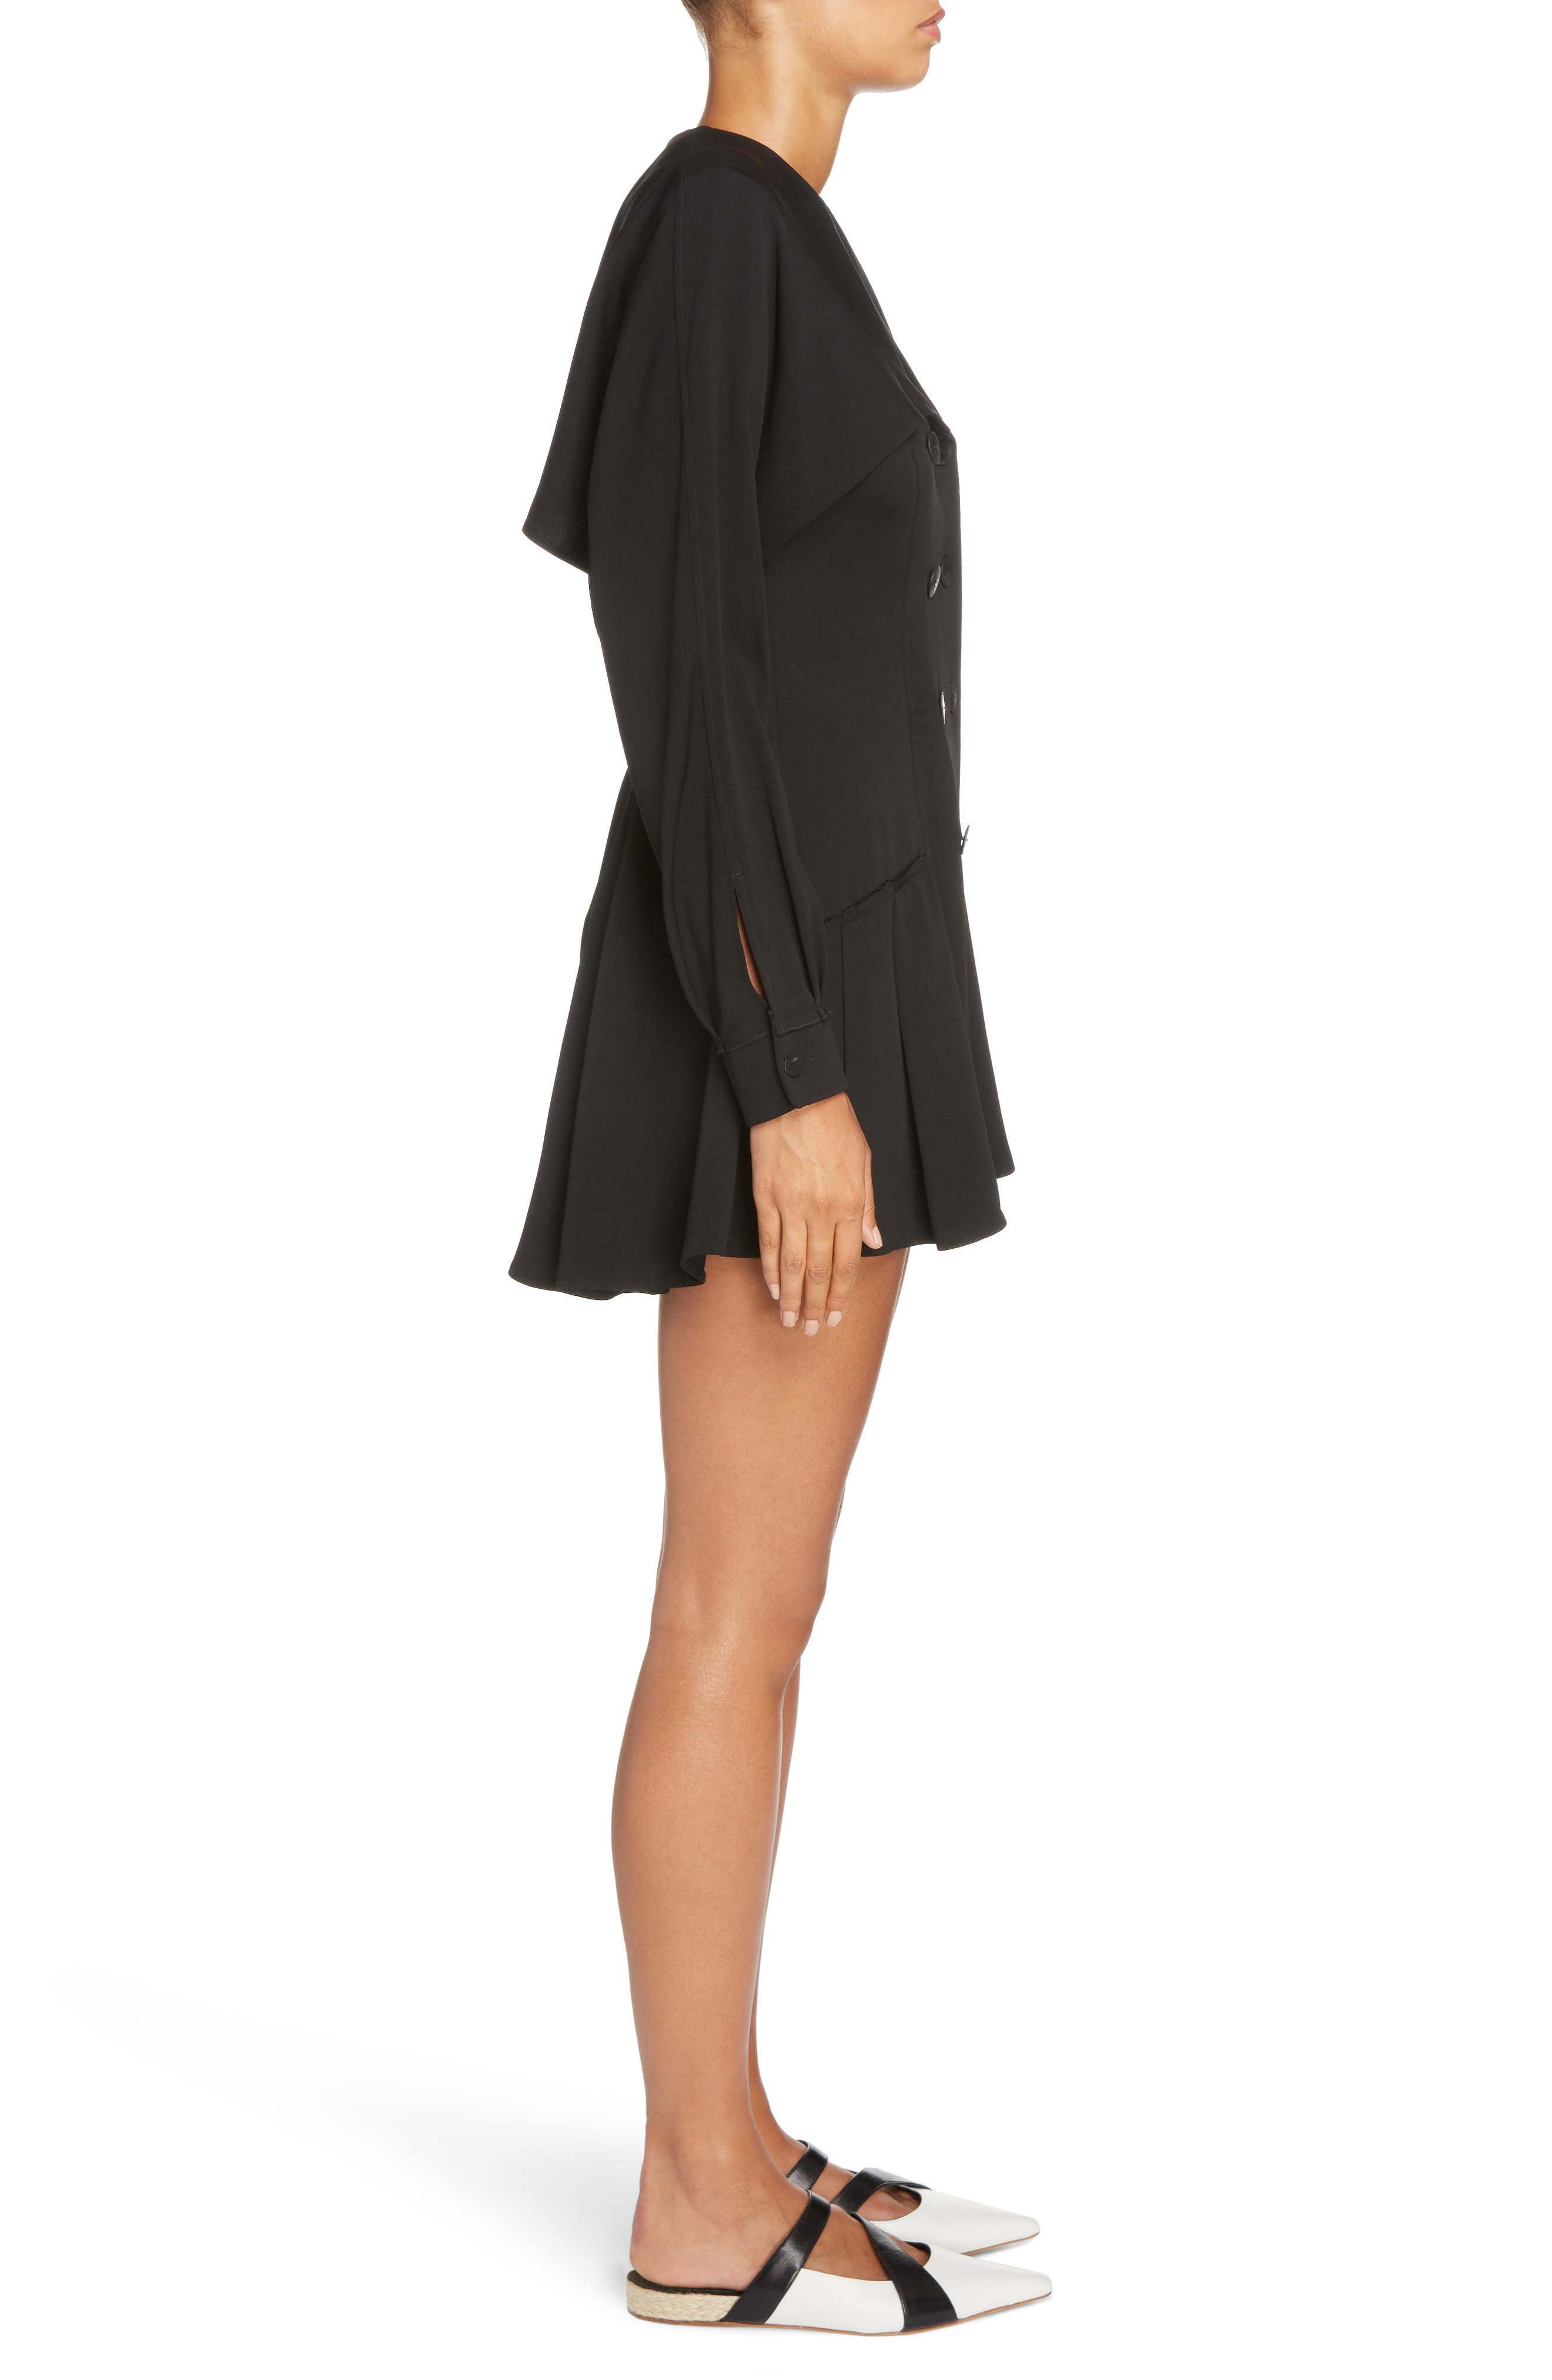 J.W.ANDERSON Double Breasted Skater Dress,                             Alternate thumbnail 3, color,                             Black